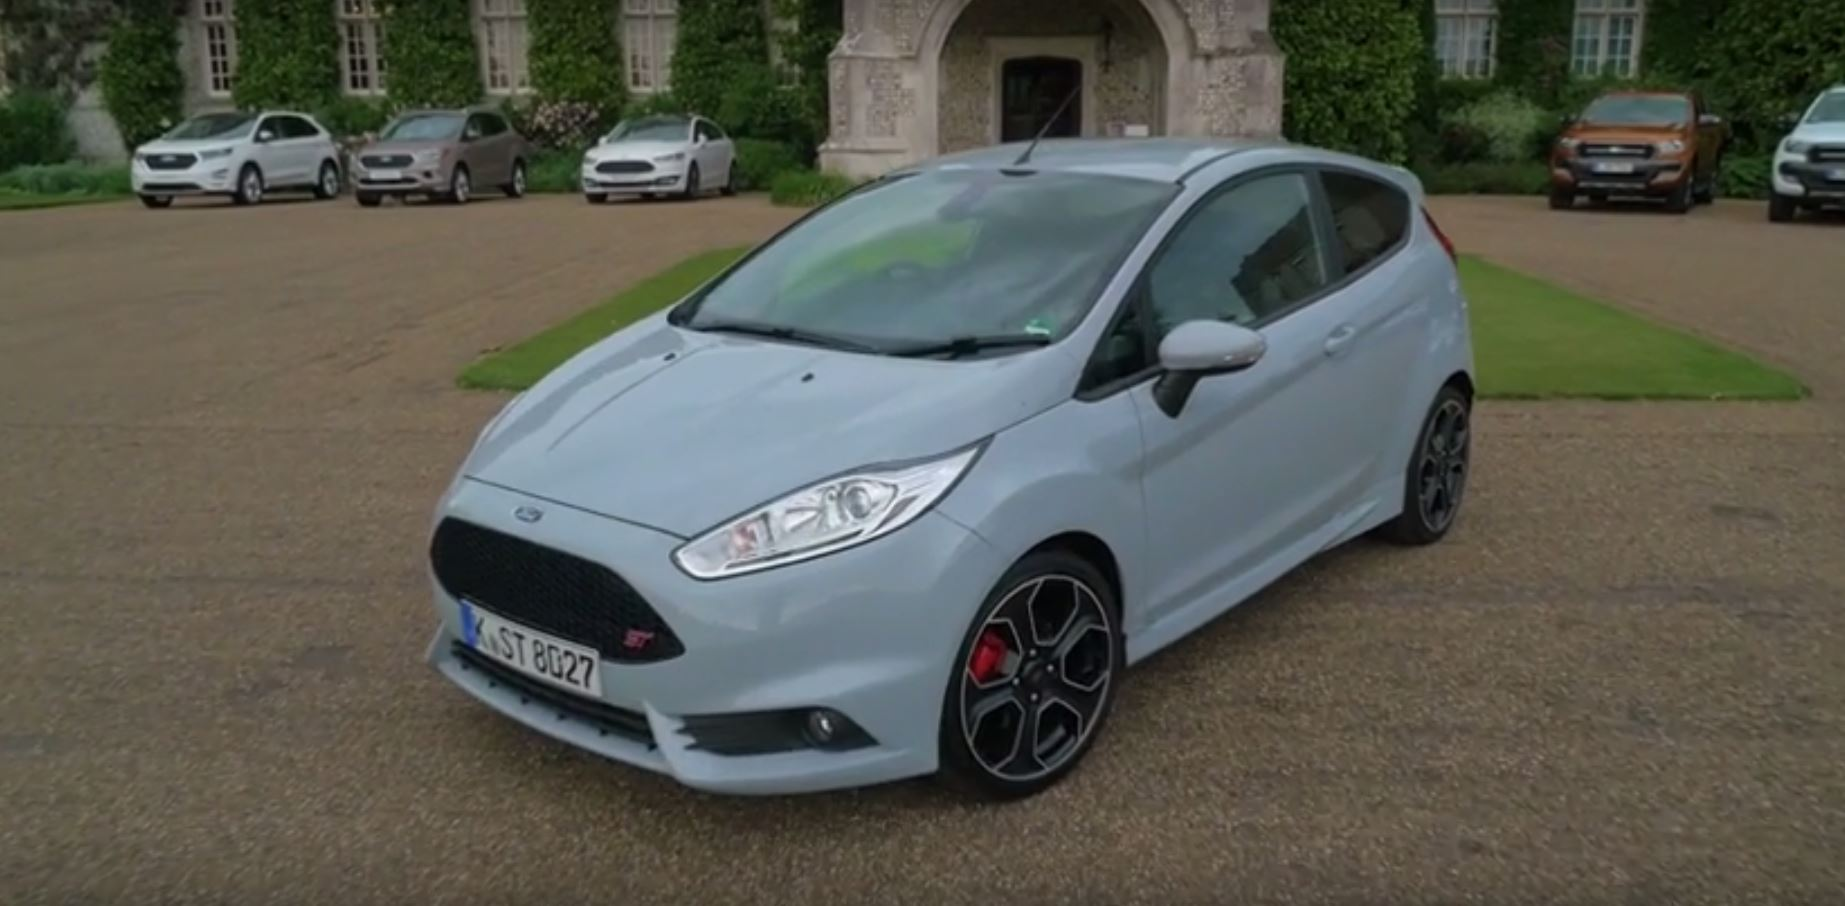 fiesta st200 visits 2016 goodwood fos gets driven by a. Black Bedroom Furniture Sets. Home Design Ideas